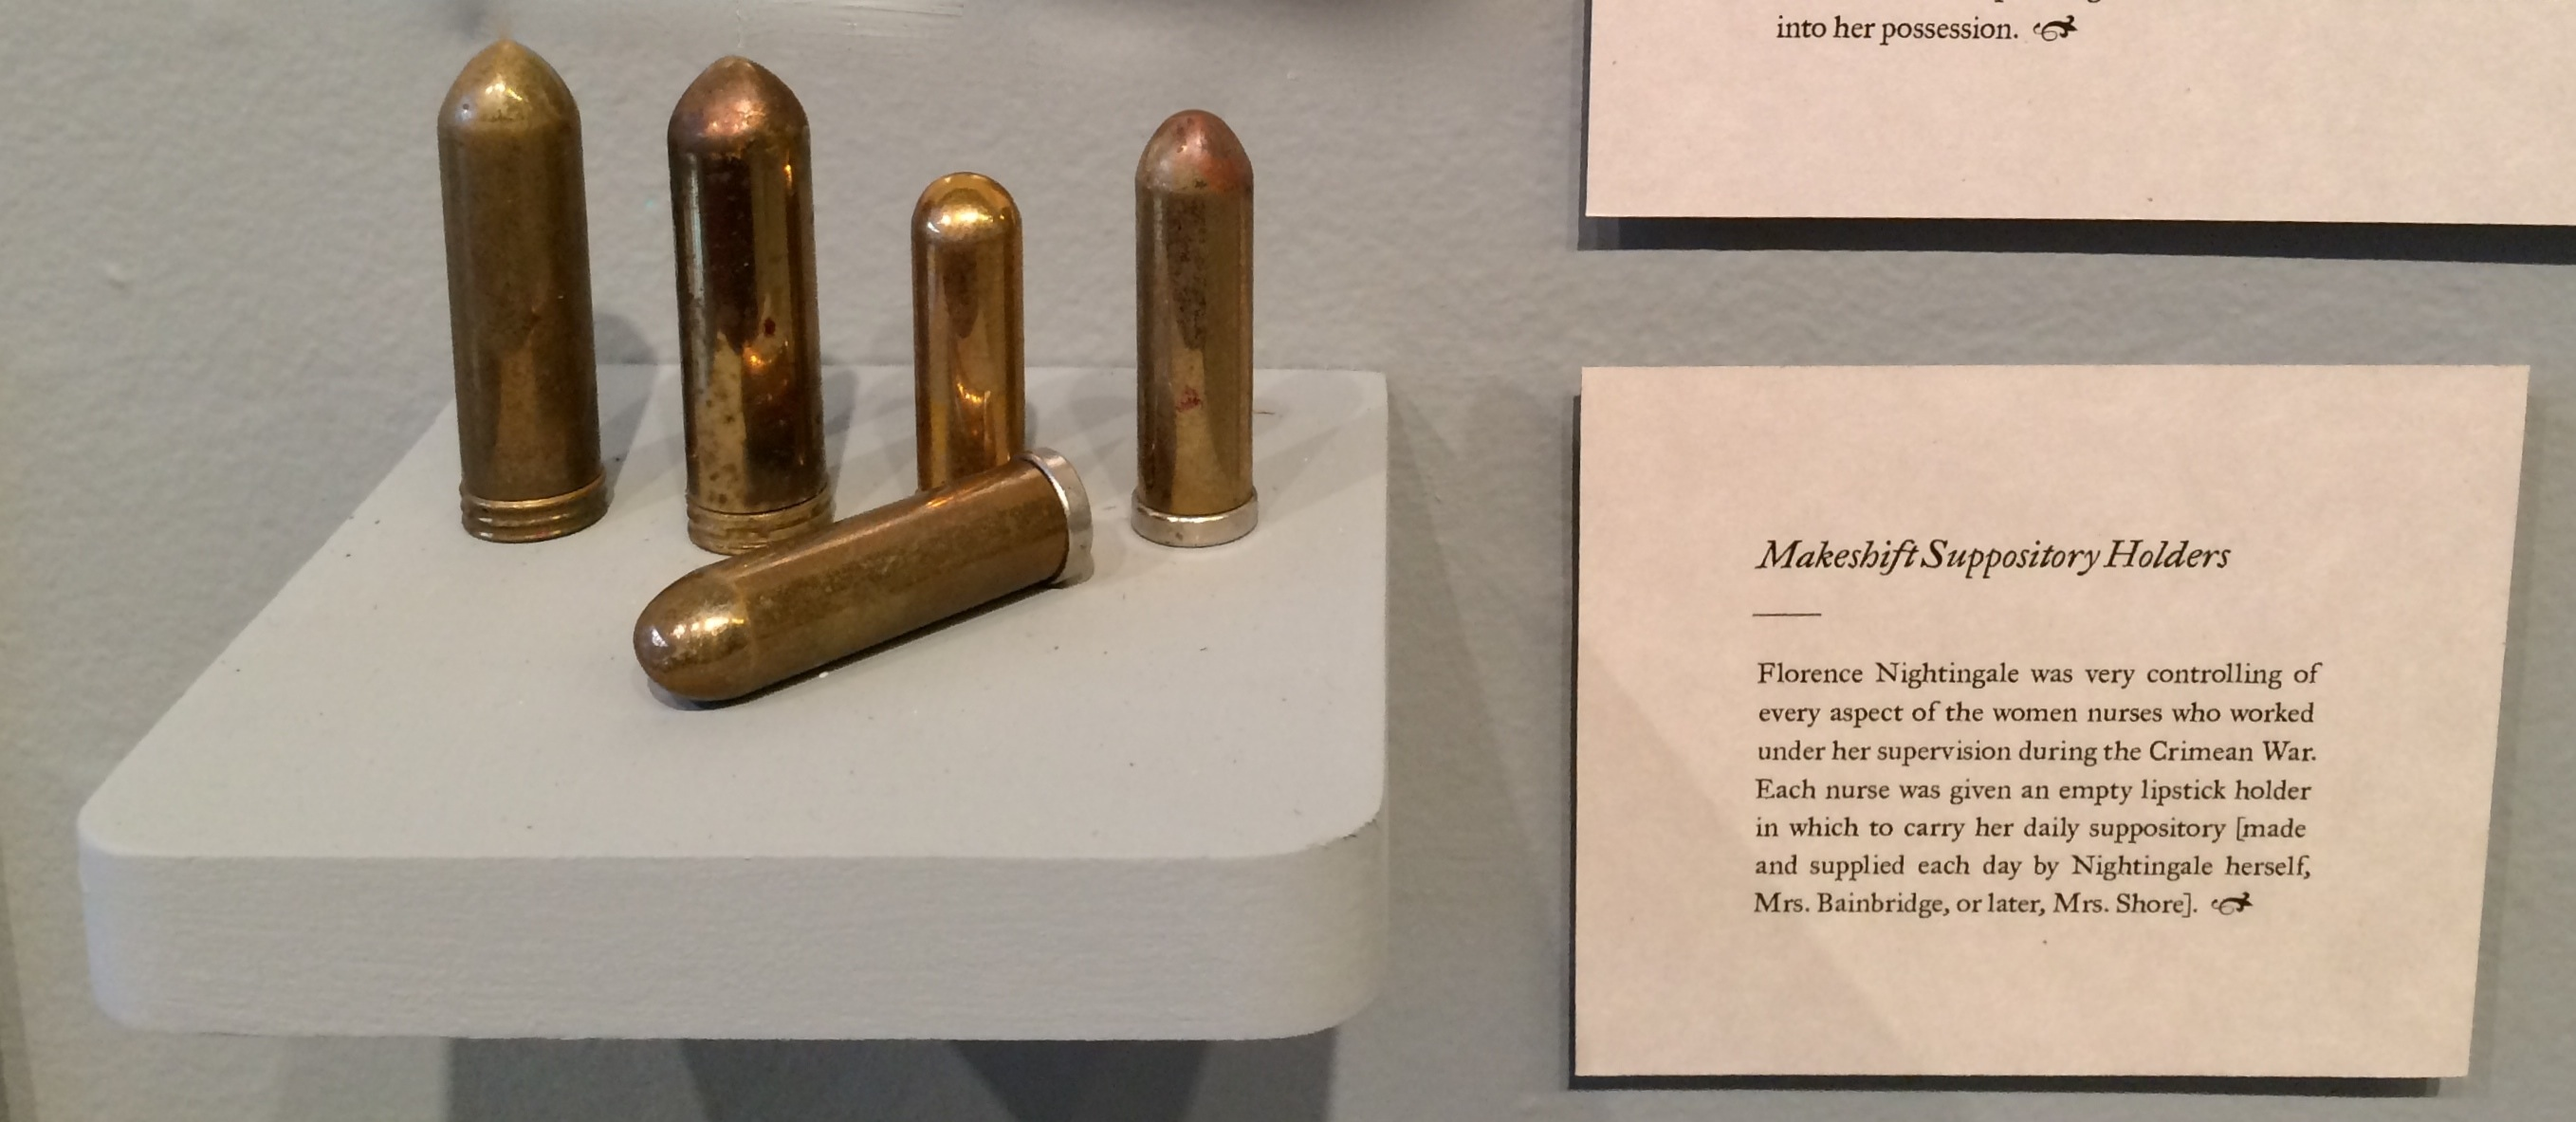 artifacts from the adventures of florence nightingale collected by makeshift suppository holders